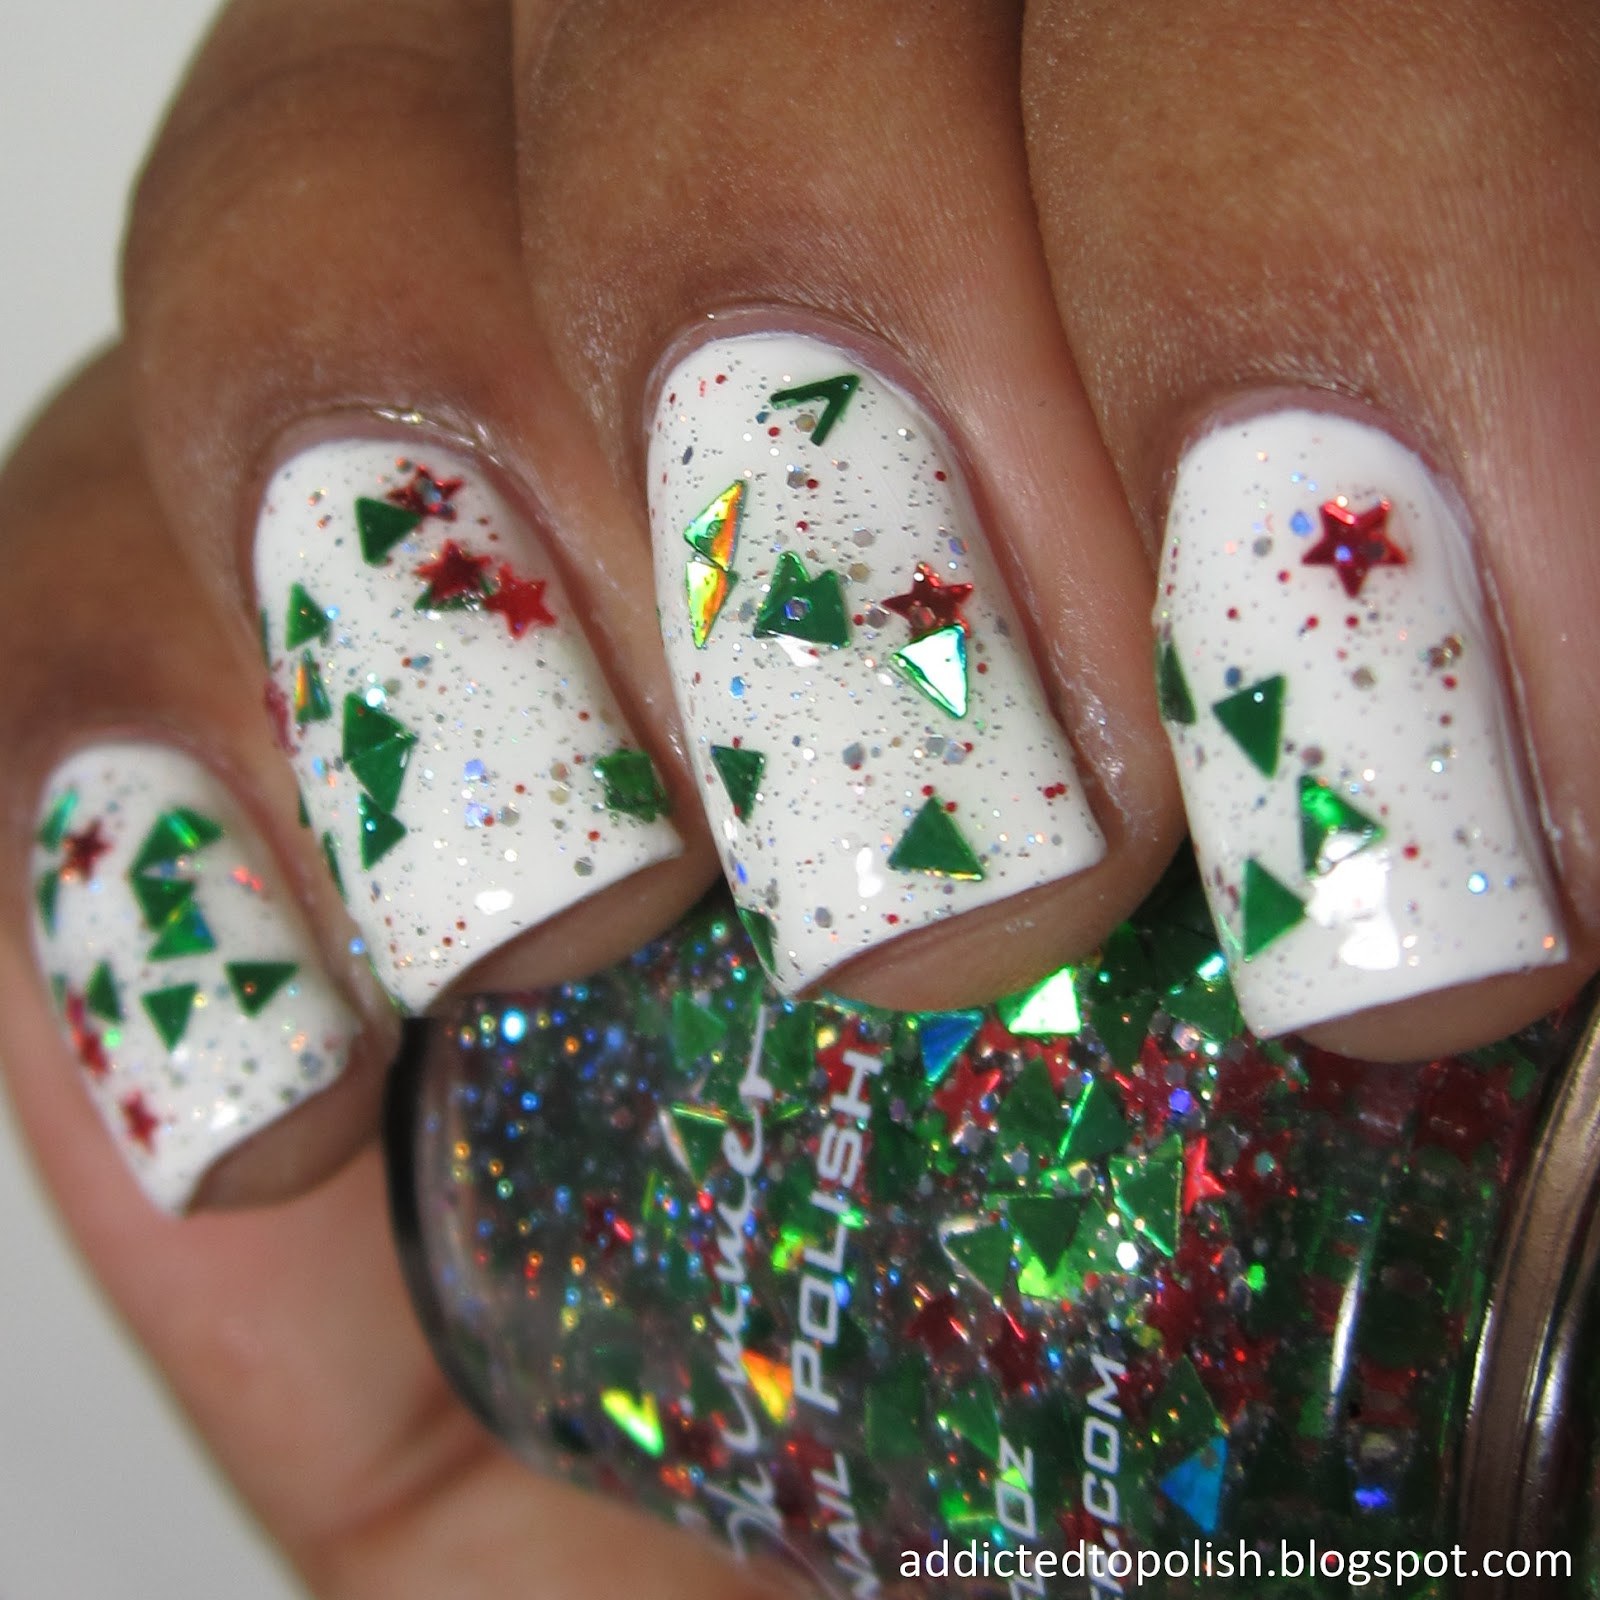 KBShimmer-Pining-for-Yule-over-white-winter-2014